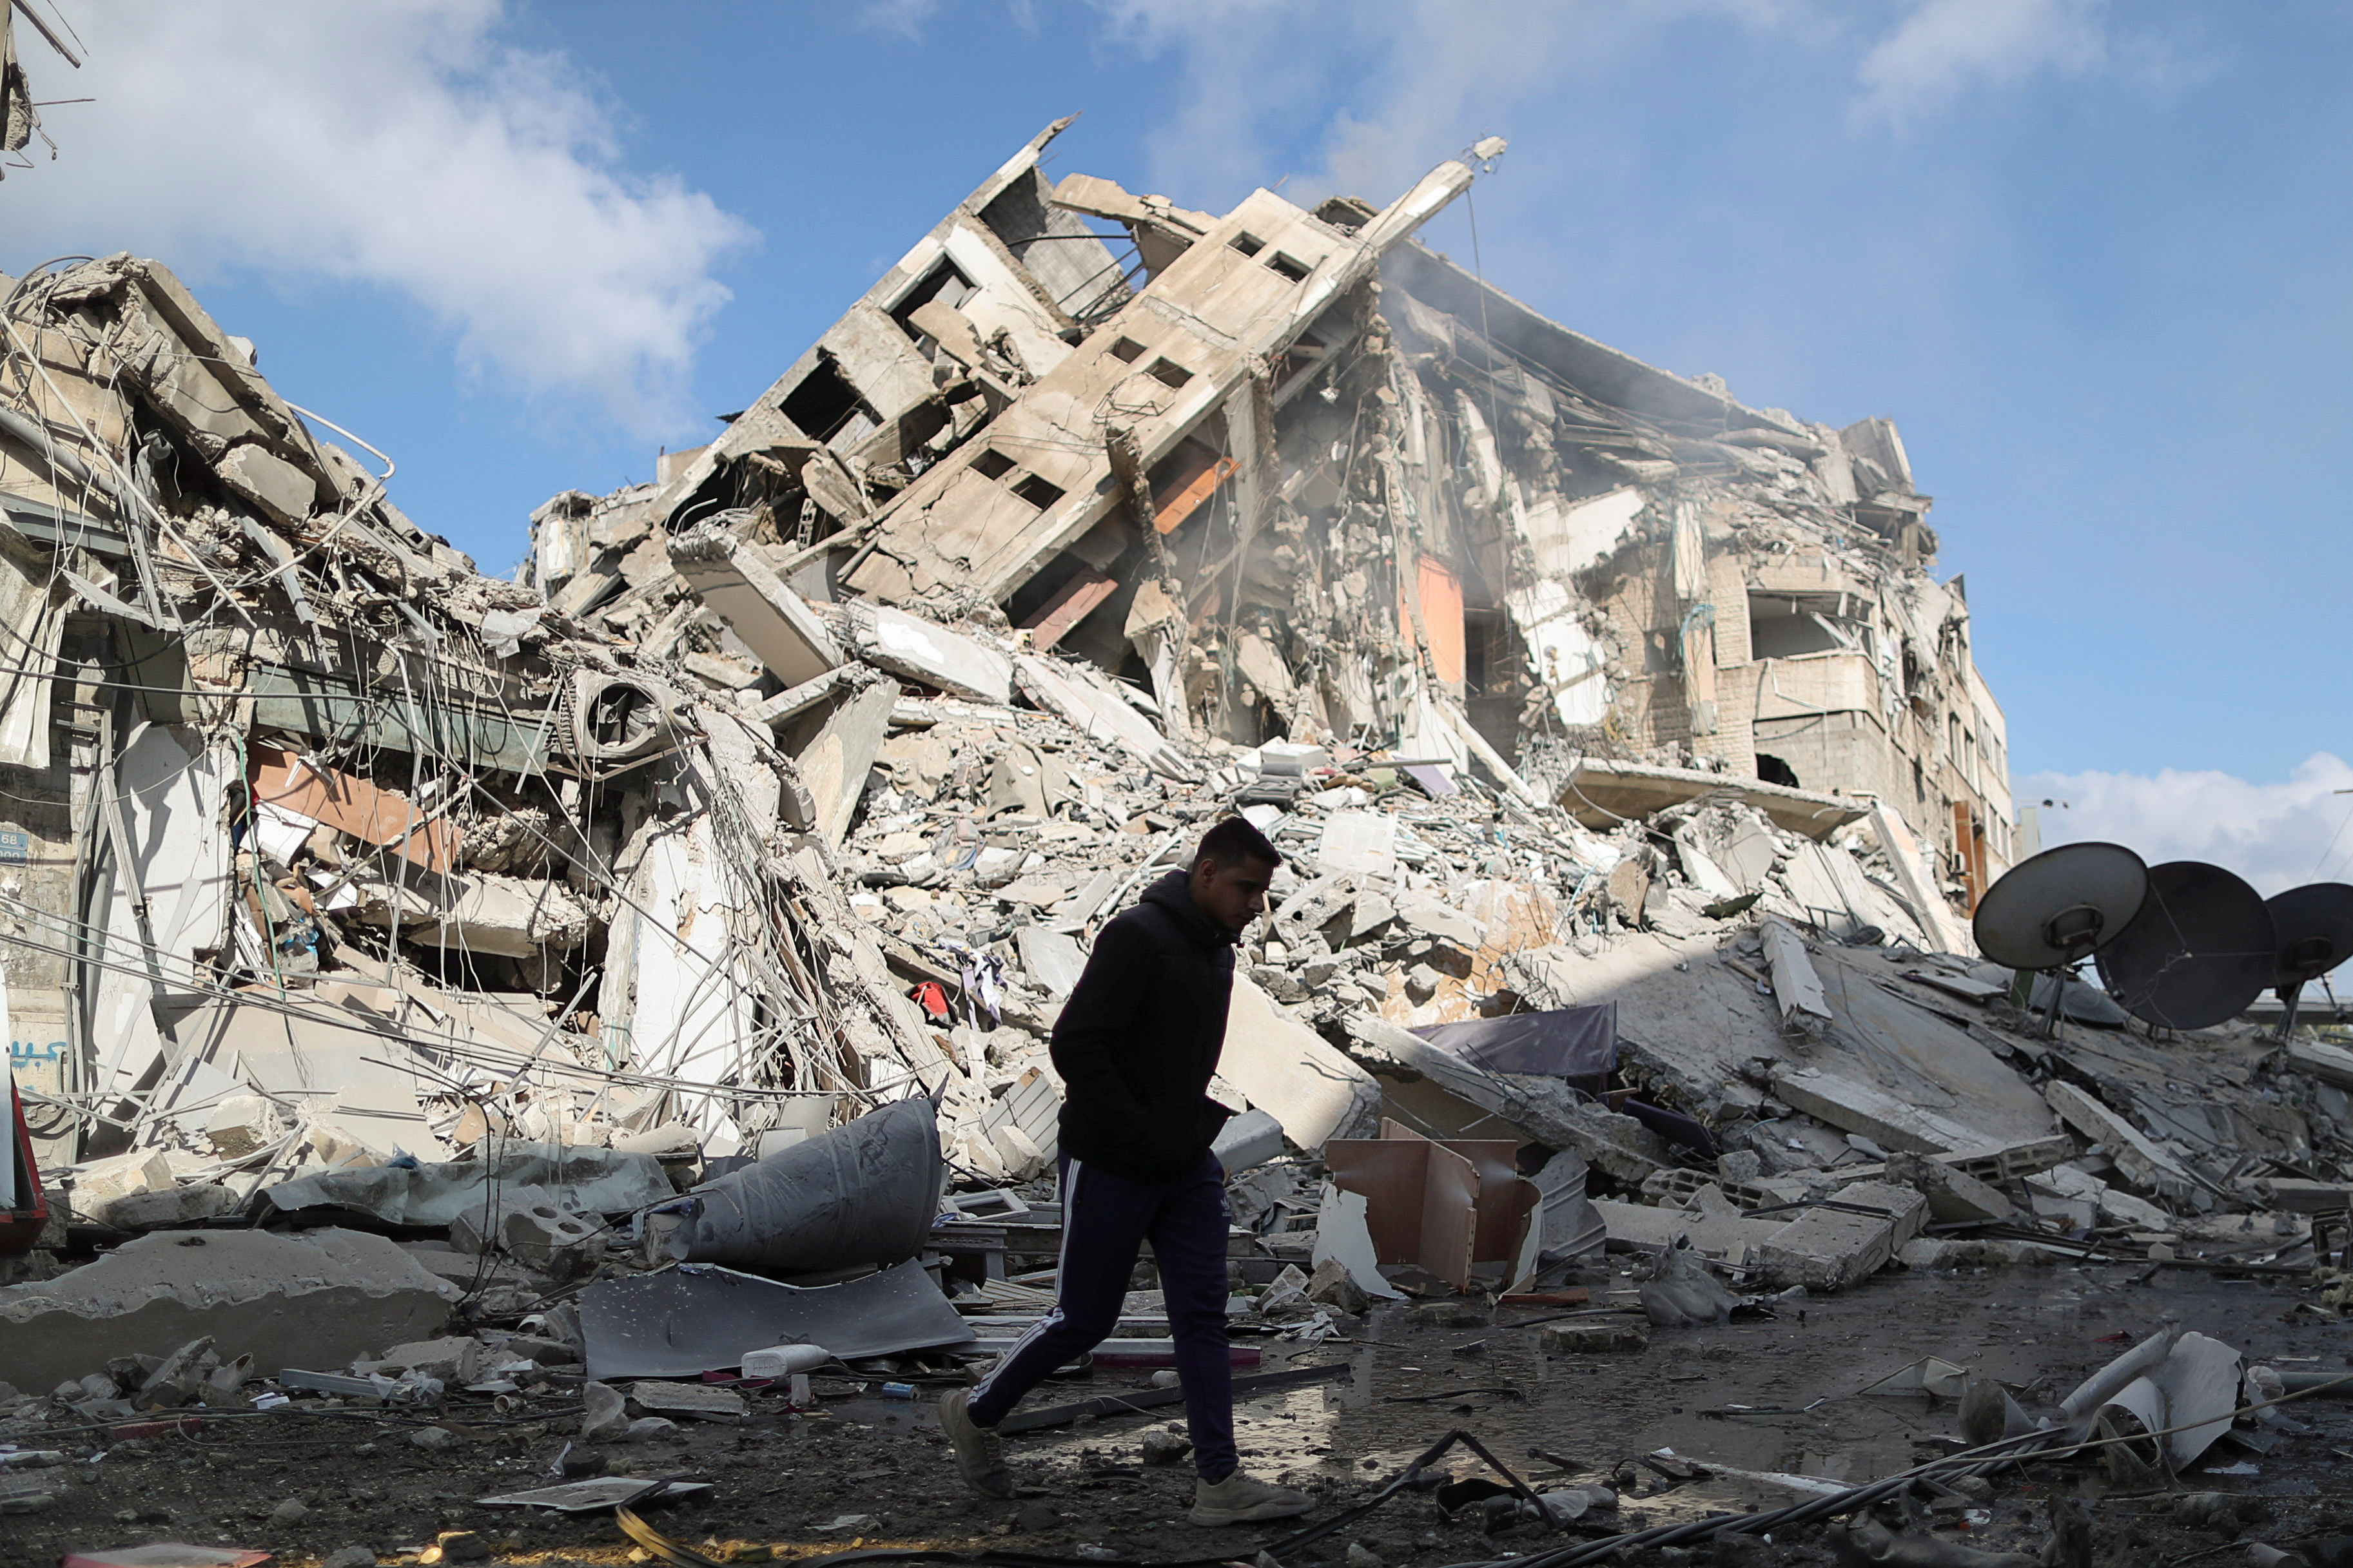 A Palestinian man walks past the remains of a tower building which was destroyed by Israeli air strikes, amid a flare-up of Israeli-Palestinian violence, in Gaza City May 13, 2021. REUTERS/Suhaib Salem